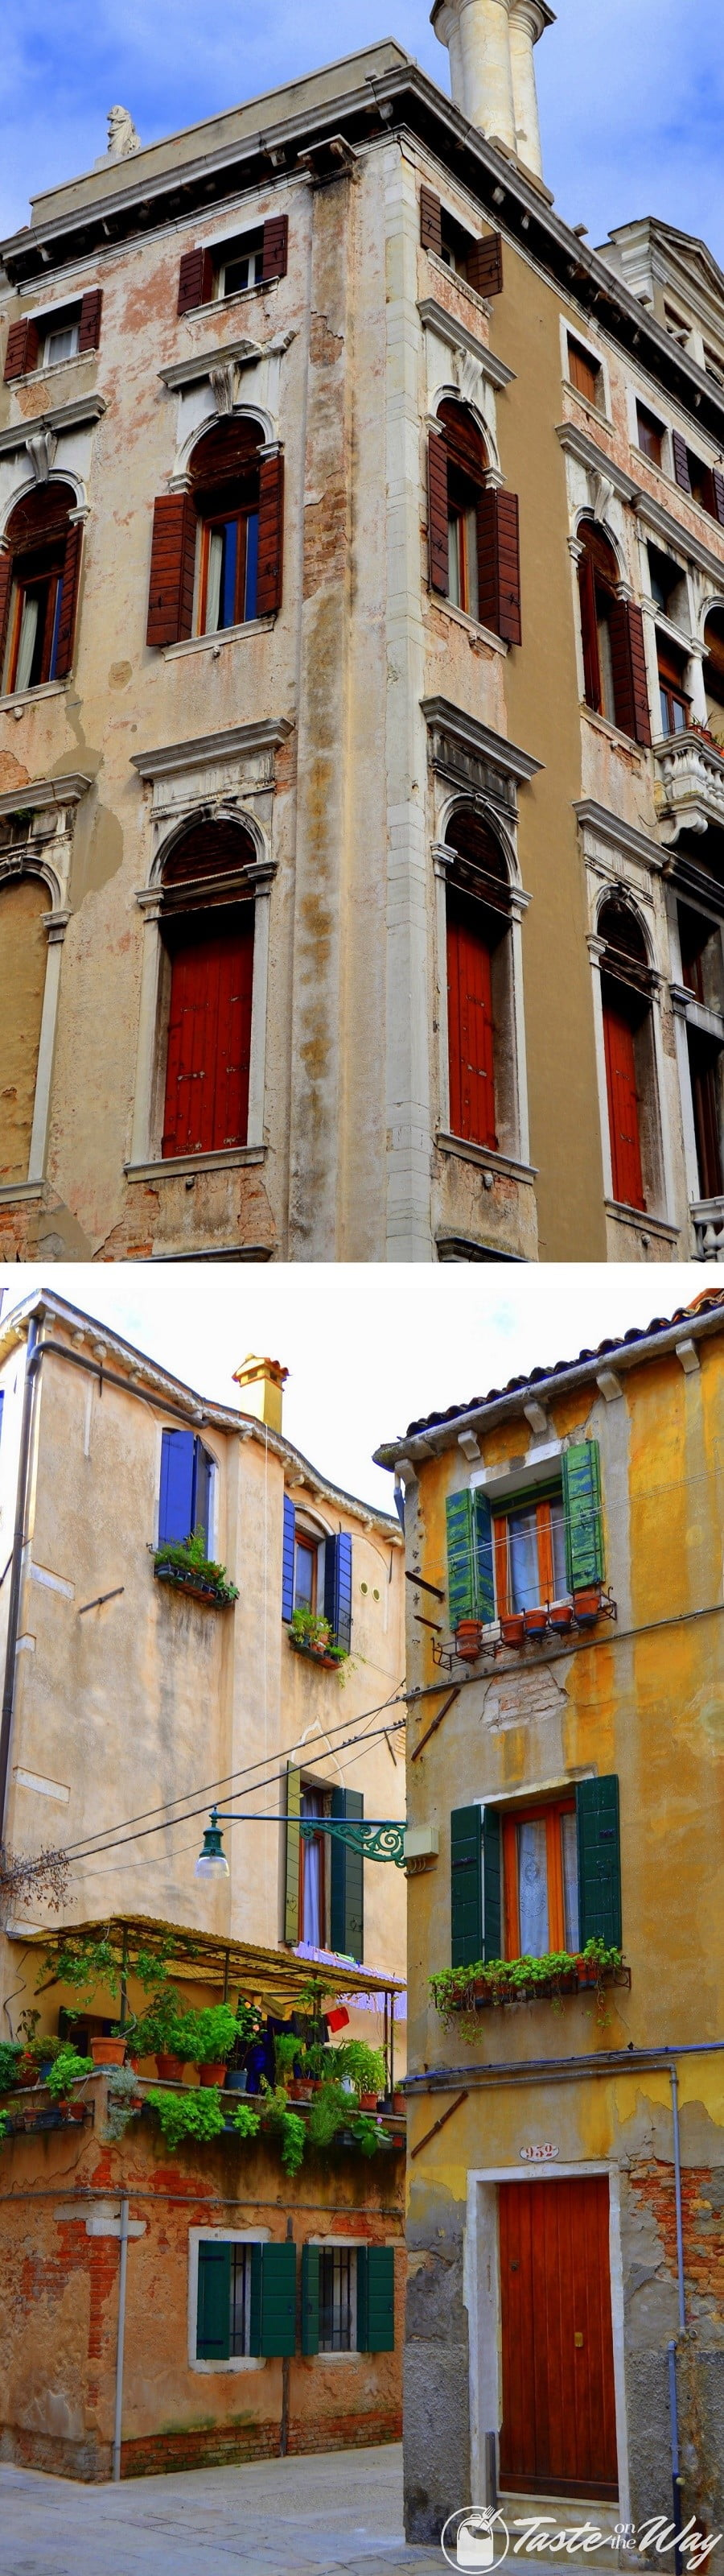 Check out these awesome pictures of colorful houses in #Venice #travel #photography @tasteontheway